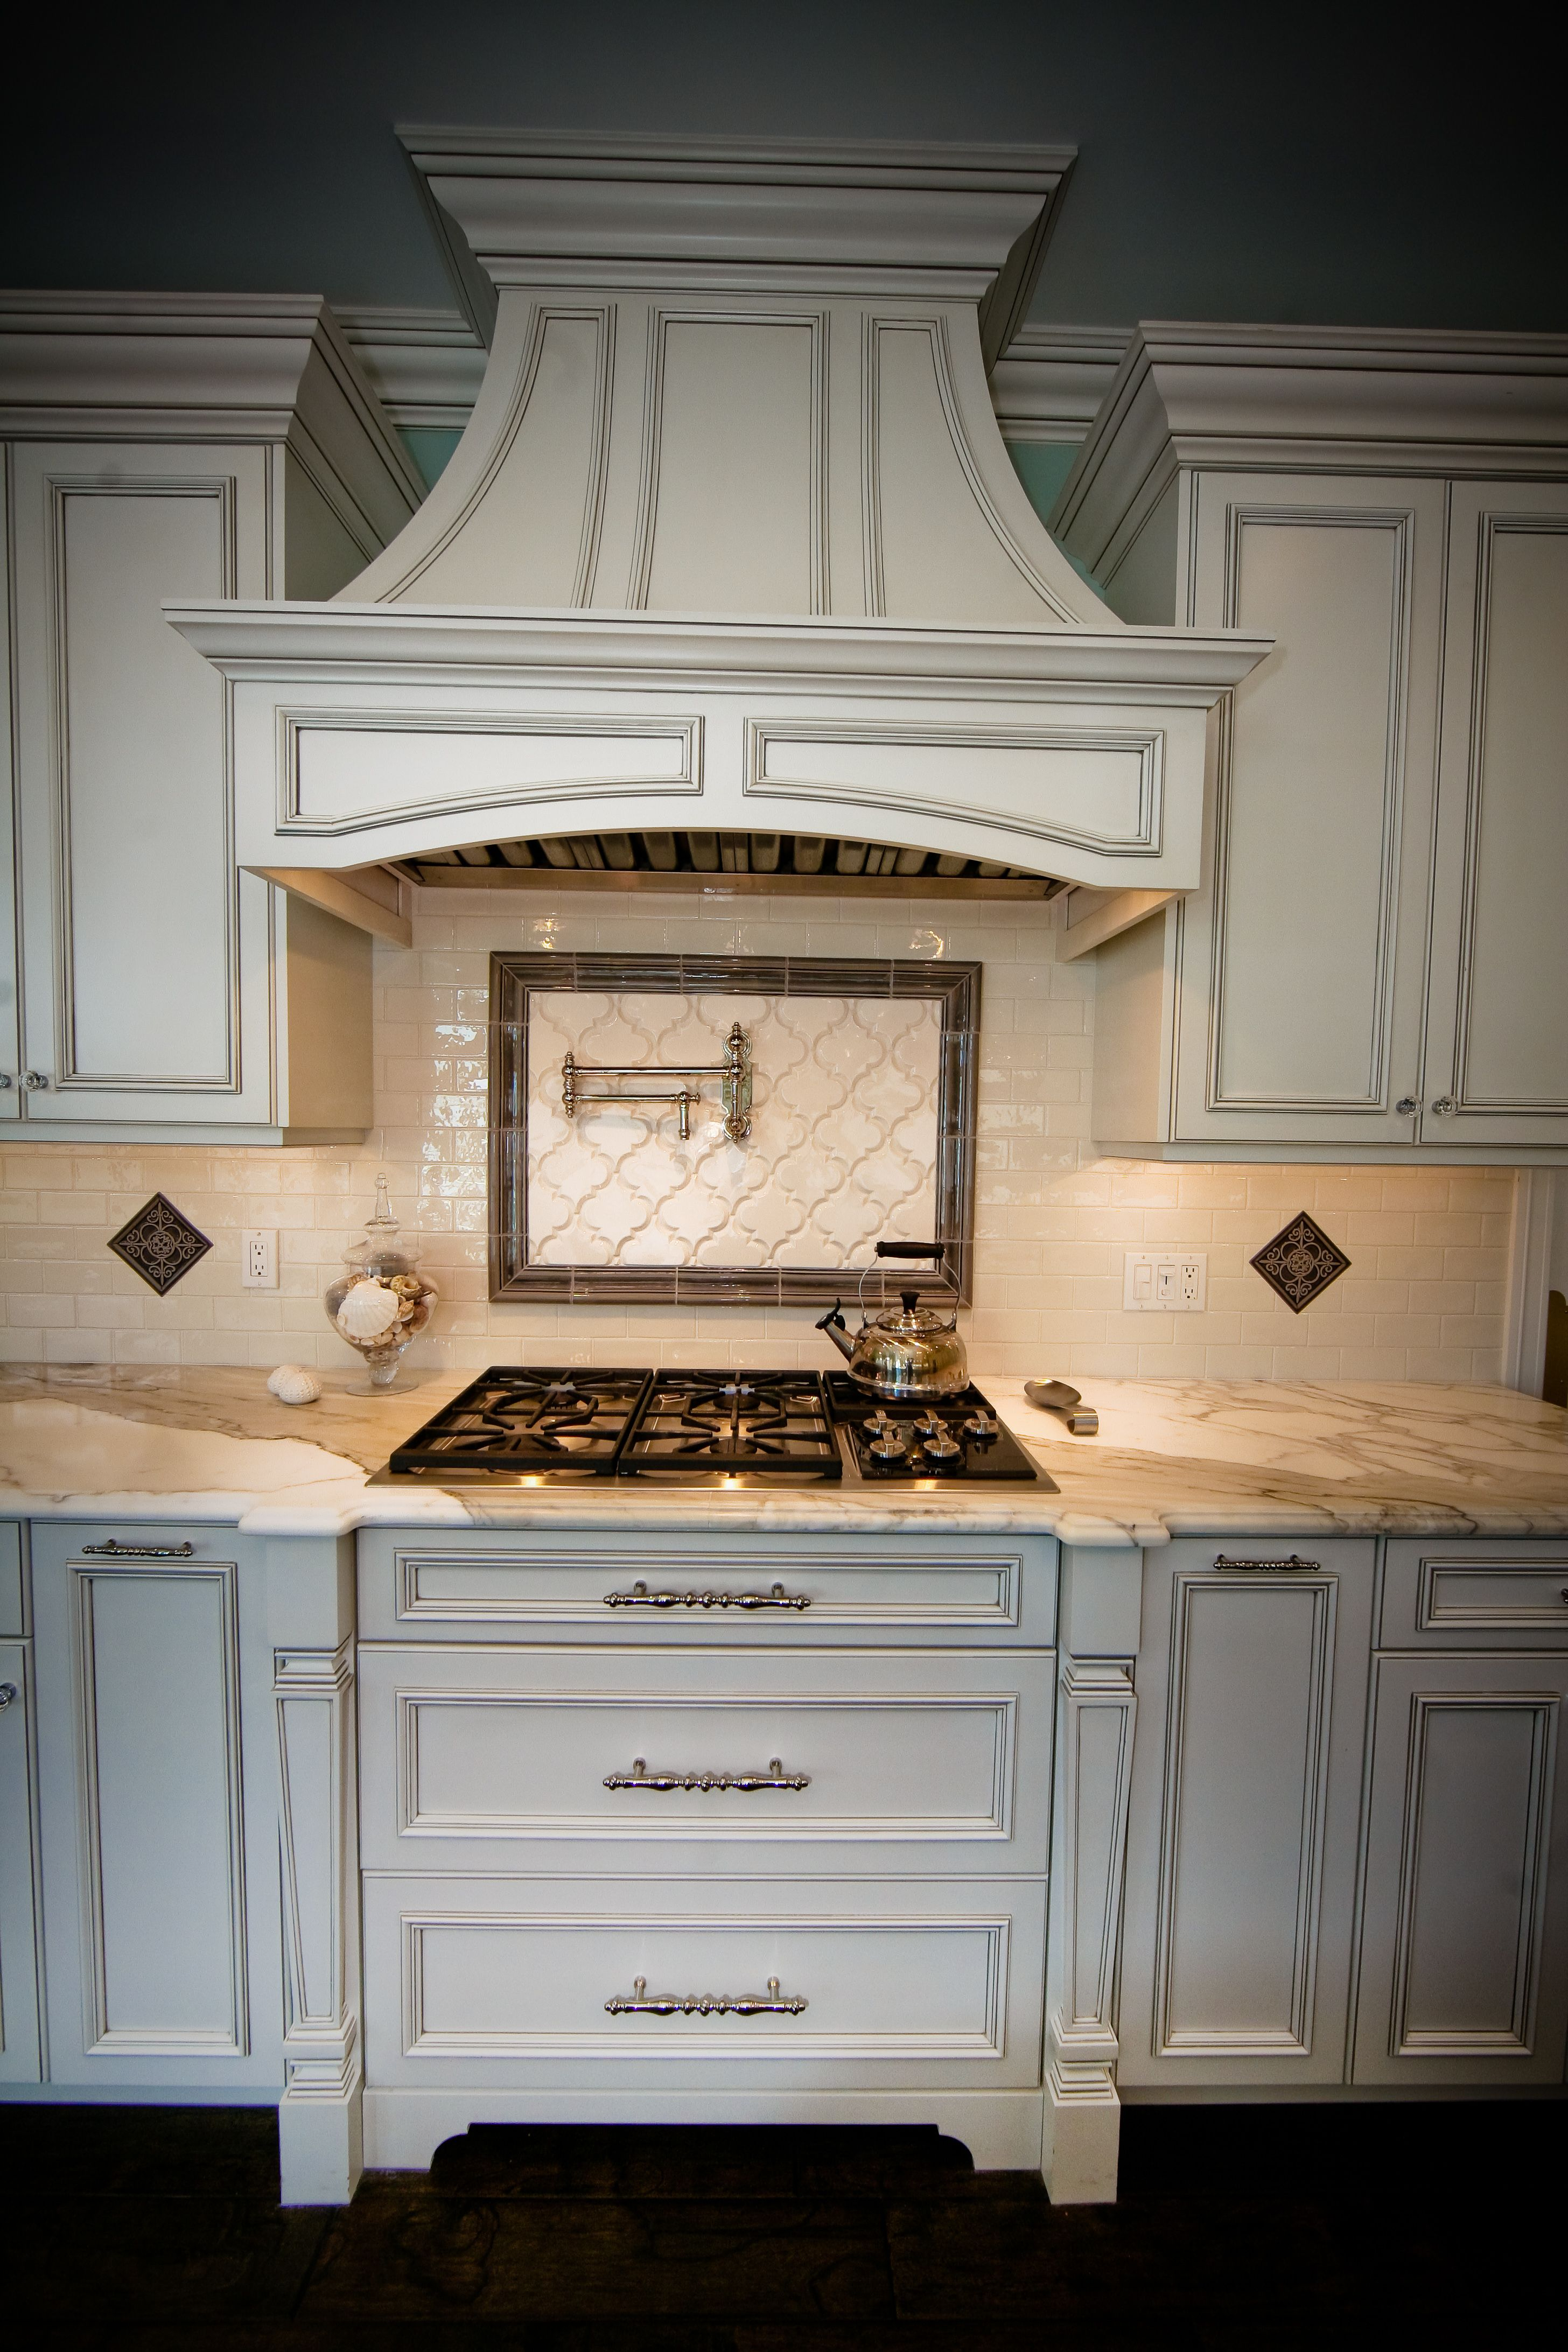 Kitchen Hoods  Design Line Kitchens In Sea Girt Nj  Renovation Awesome Design Line Kitchens Review